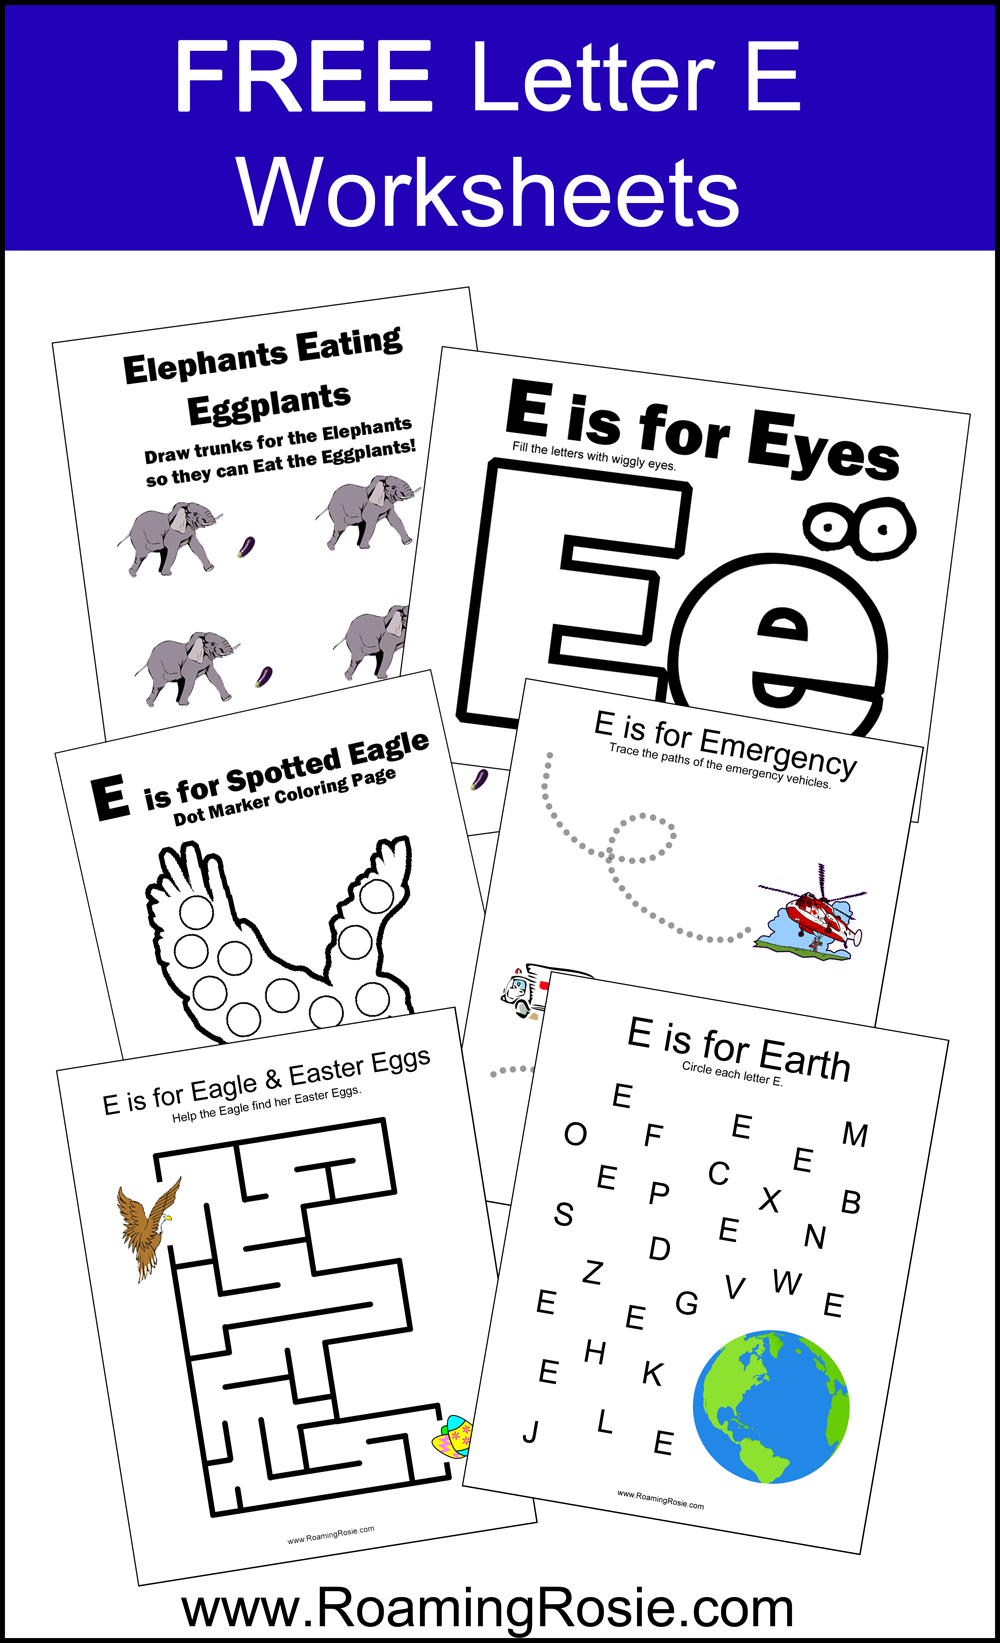 graphic regarding Letter E Printable referred to as Letter E: Cost-free Alphabet Worksheets for Young children Roaming Rosie